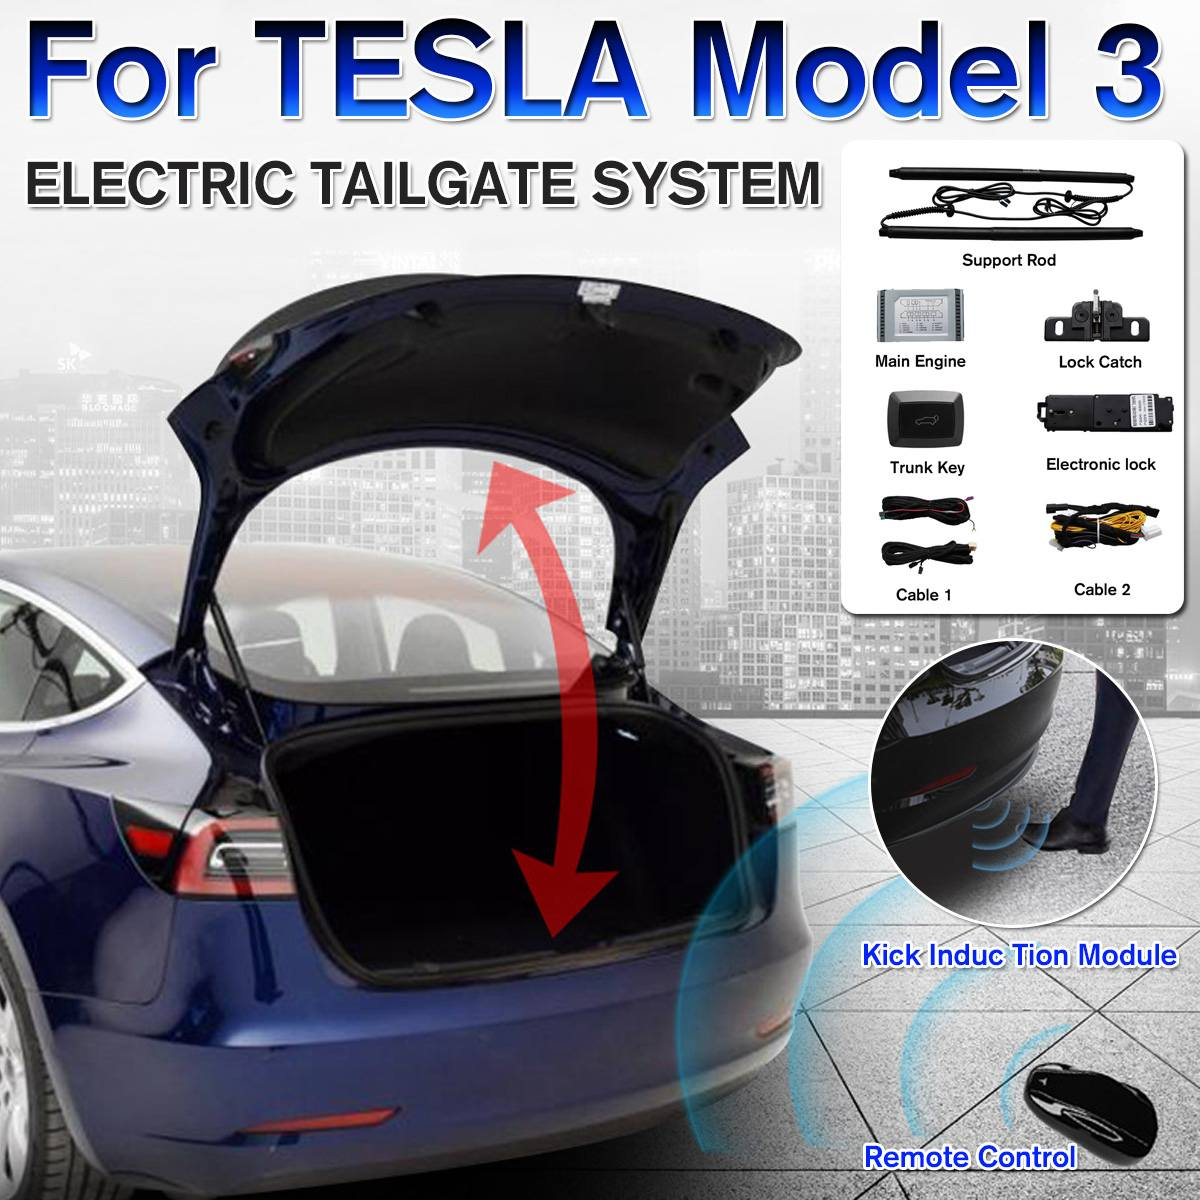 Car Electric Tail Gate Lift Tailgate System With Remote Control With Intelligent Sensing Function Of Foot Kick For TESLA Model 3